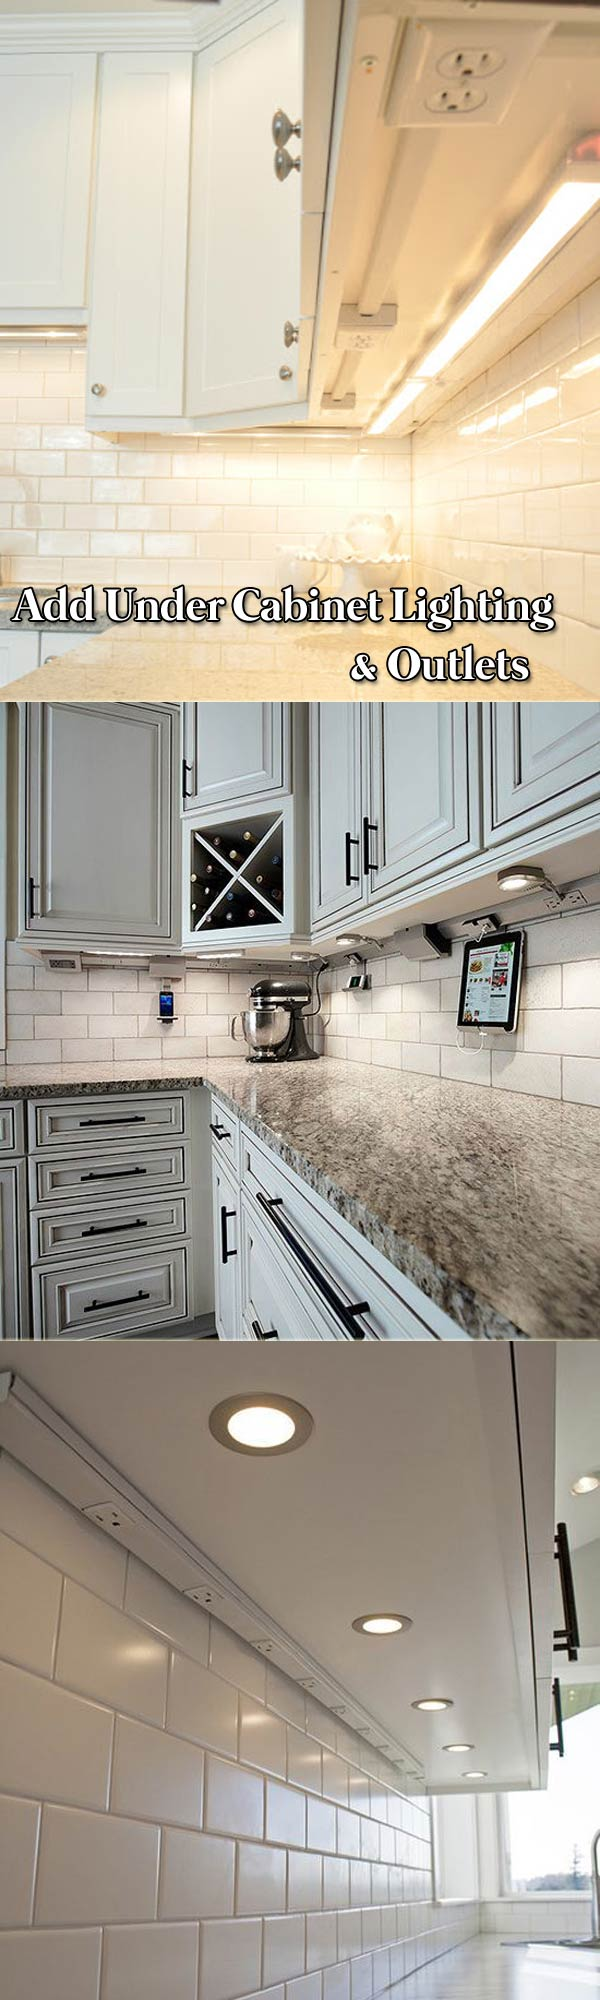 Add Under Cabinet Lighting and Outlets to Your Kitchen